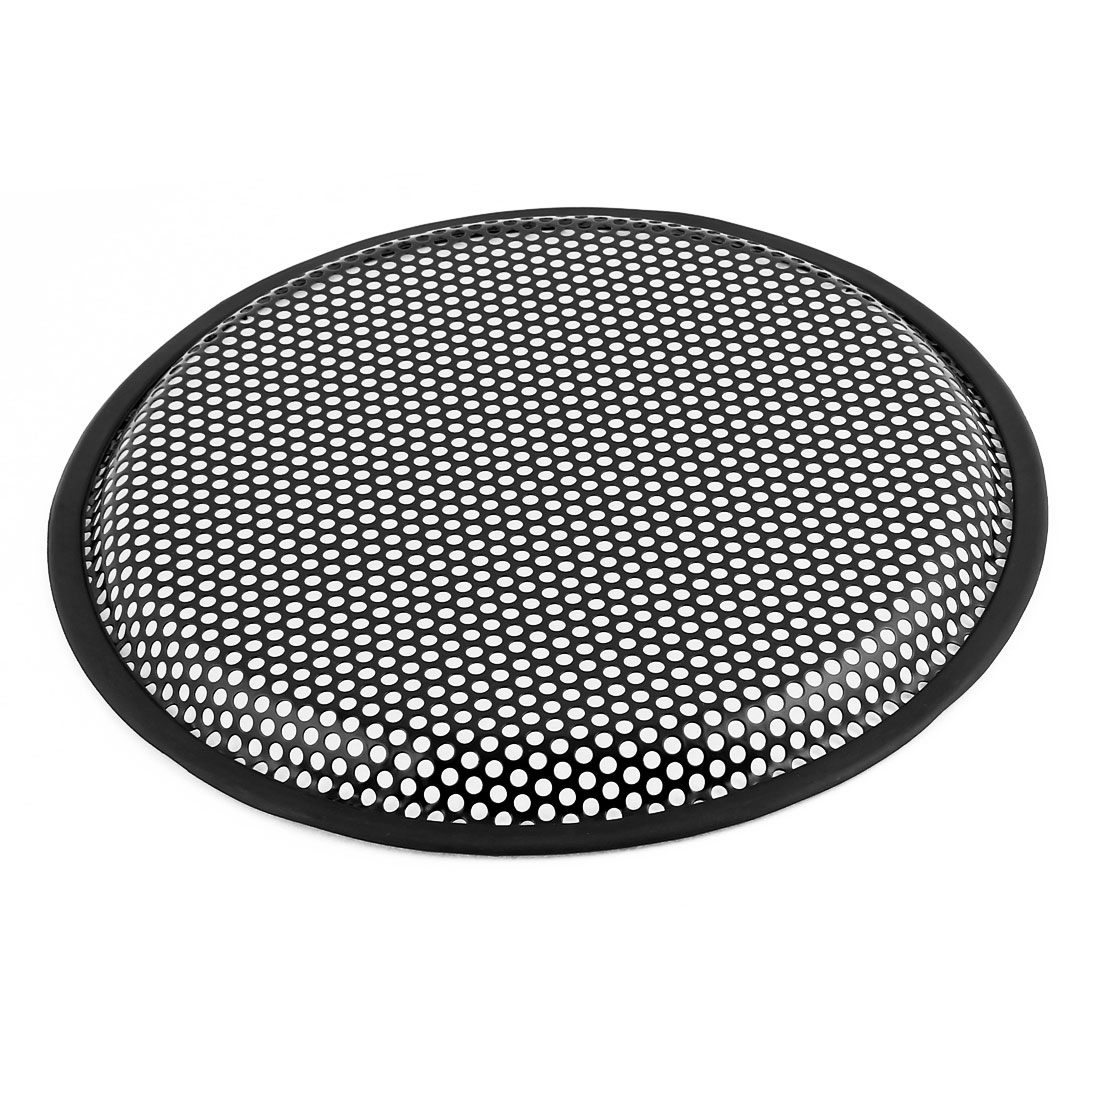 "10"" Car Audio Speaker Mesh Sub Woofer Subwoofer Grill Dust Cover Protector"